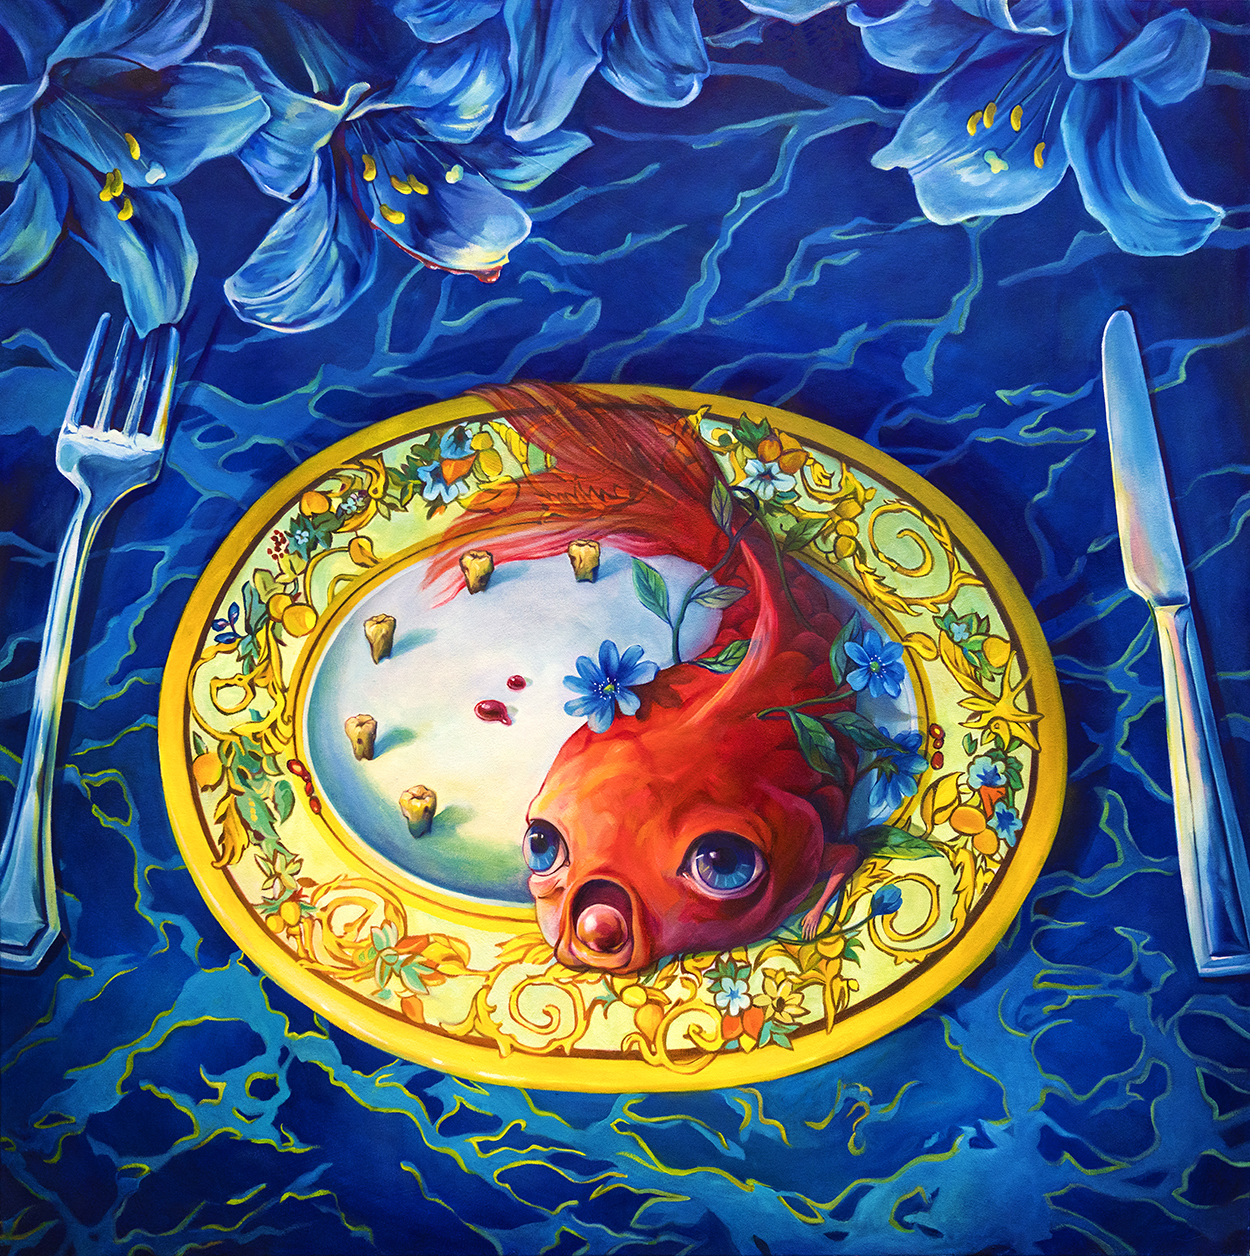 A dinner table with a plate of a koi fish served on a platter.